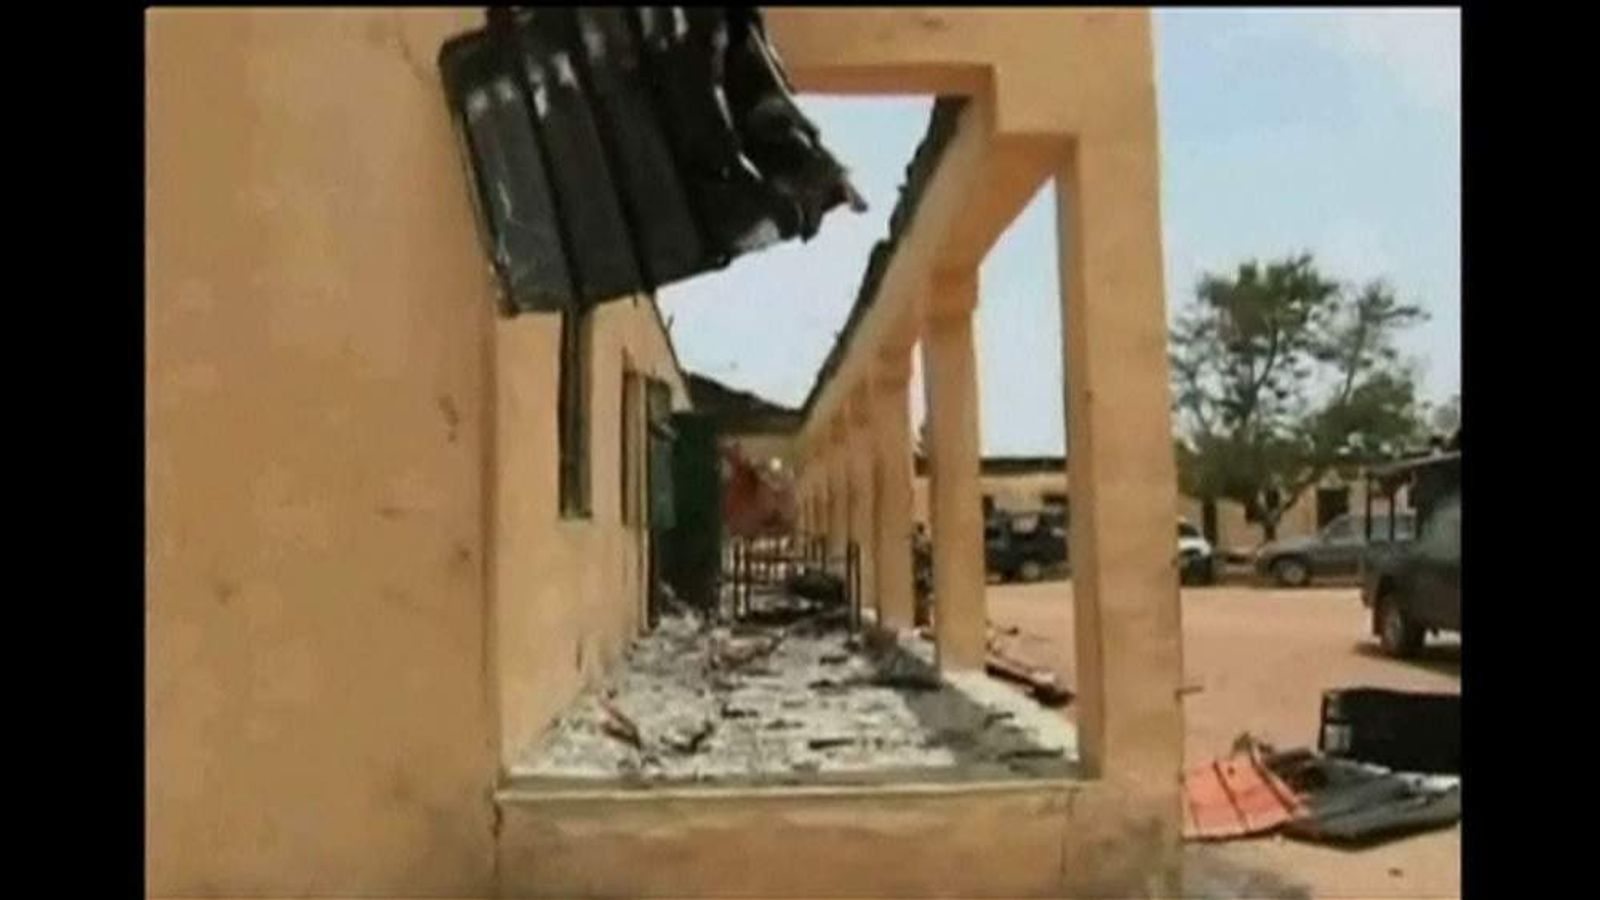 Boko Haram seize more than 230 girls from a Nigerian boarding school